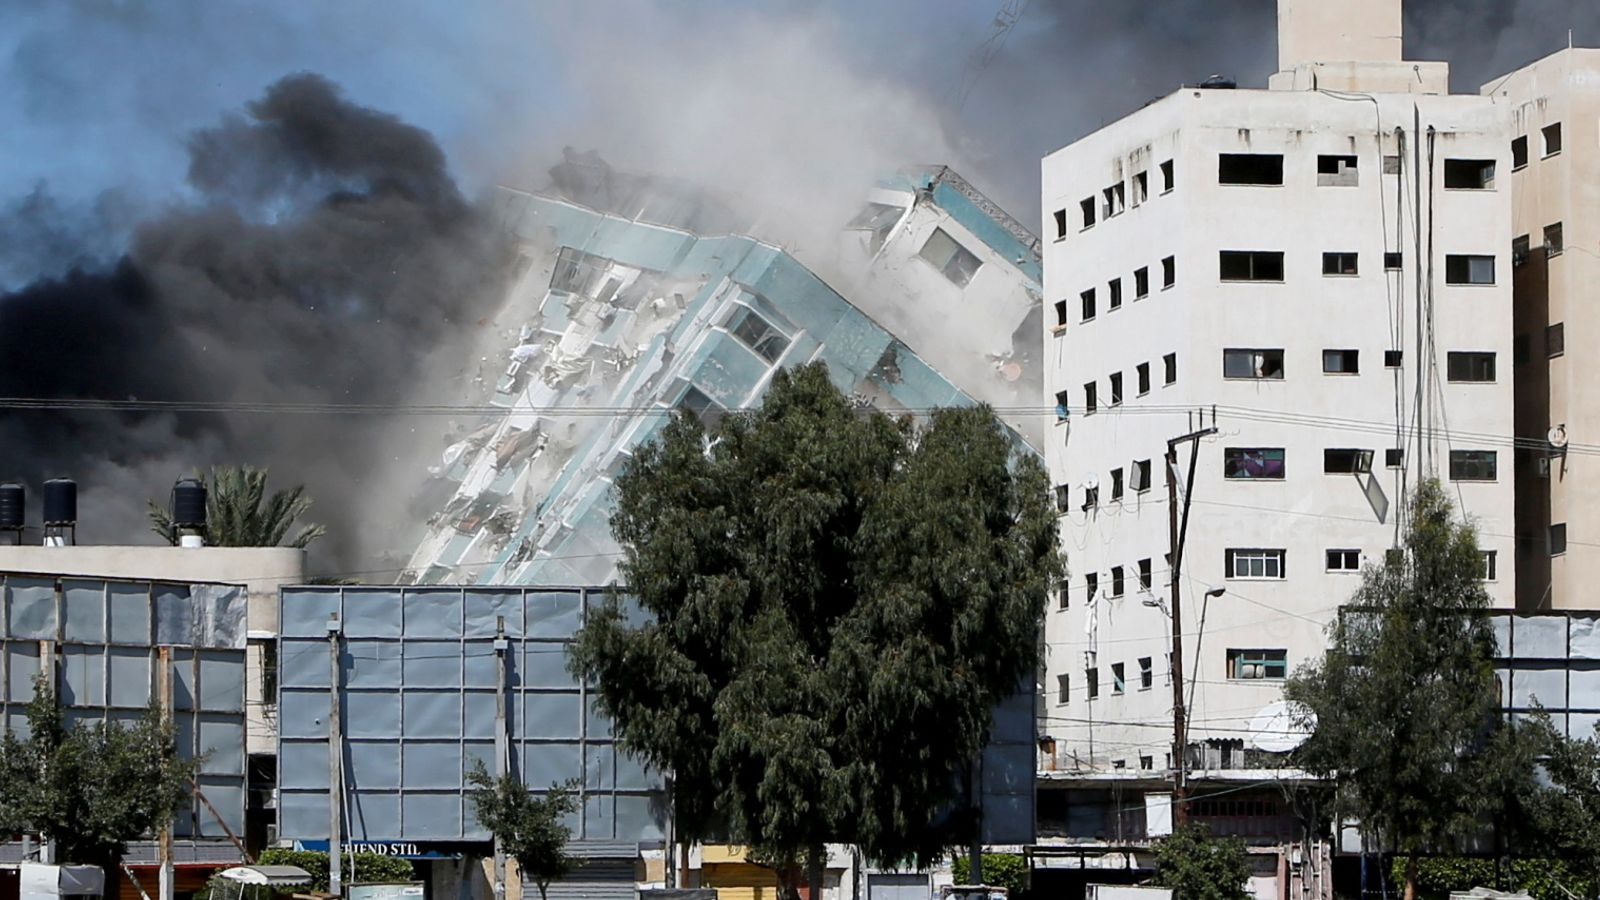 Israel-Gaza conflict: Media building in Gaza collapses after Israeli airstrike as Palestinian rockets target Tel Aviv area